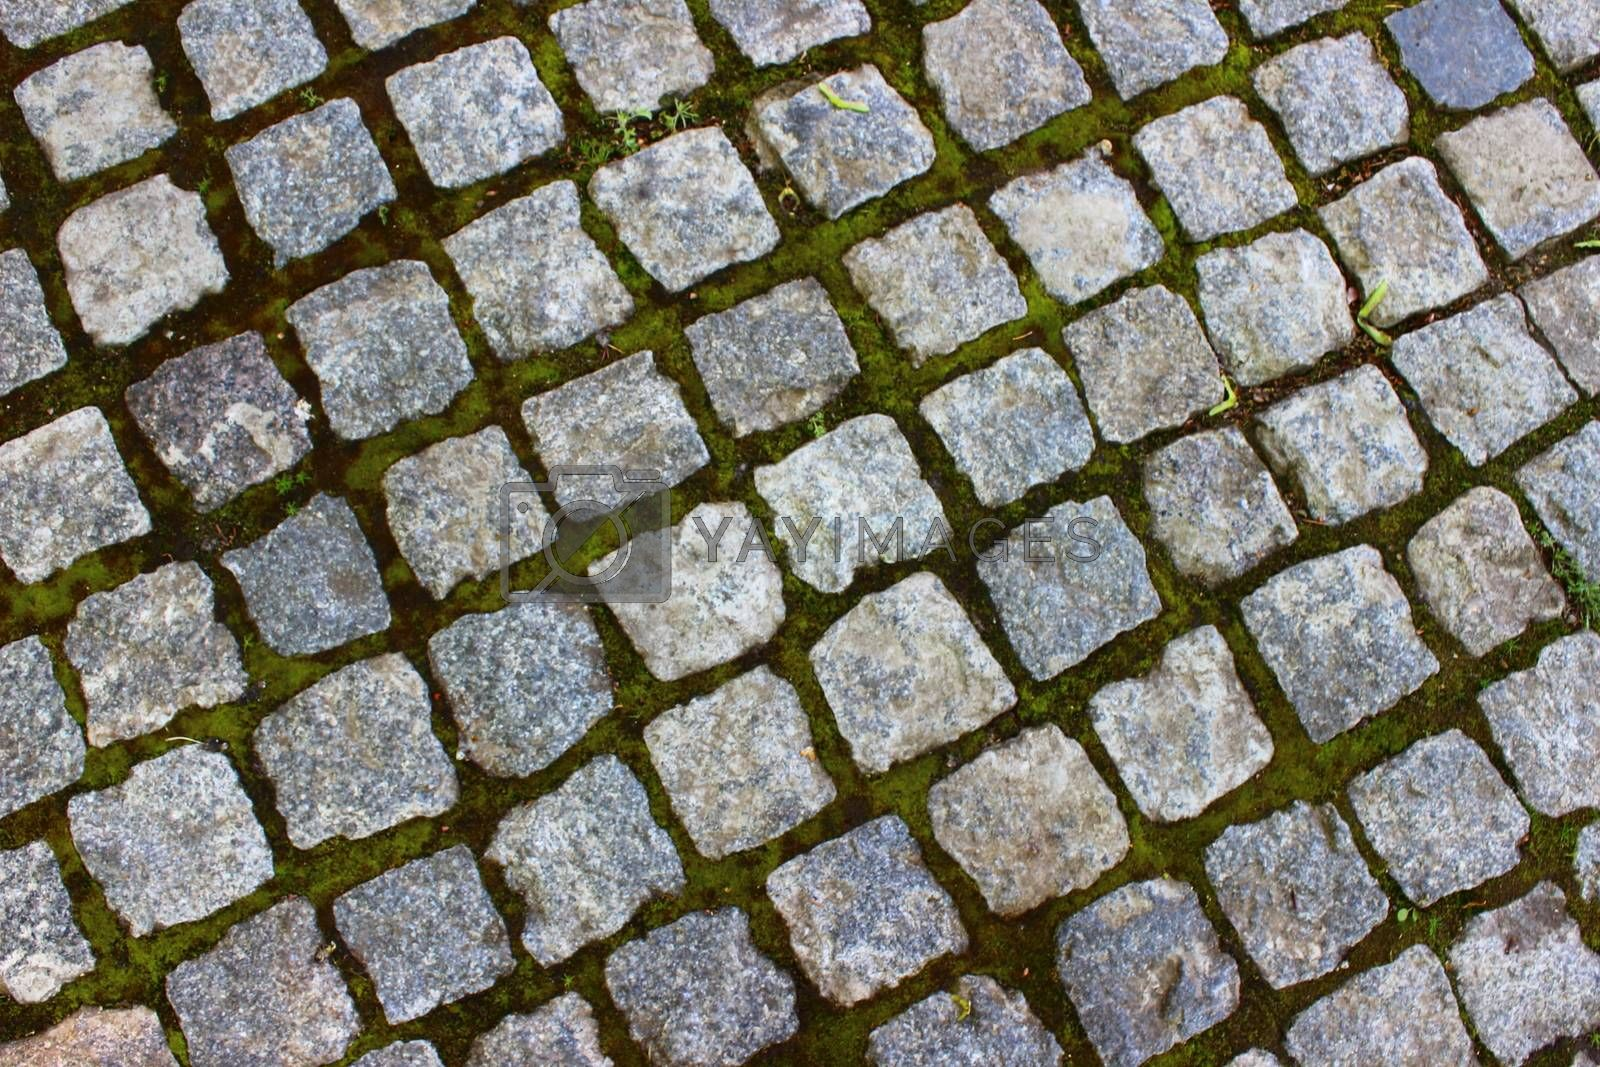 path in the park is lined with stones square and rectangular shapes